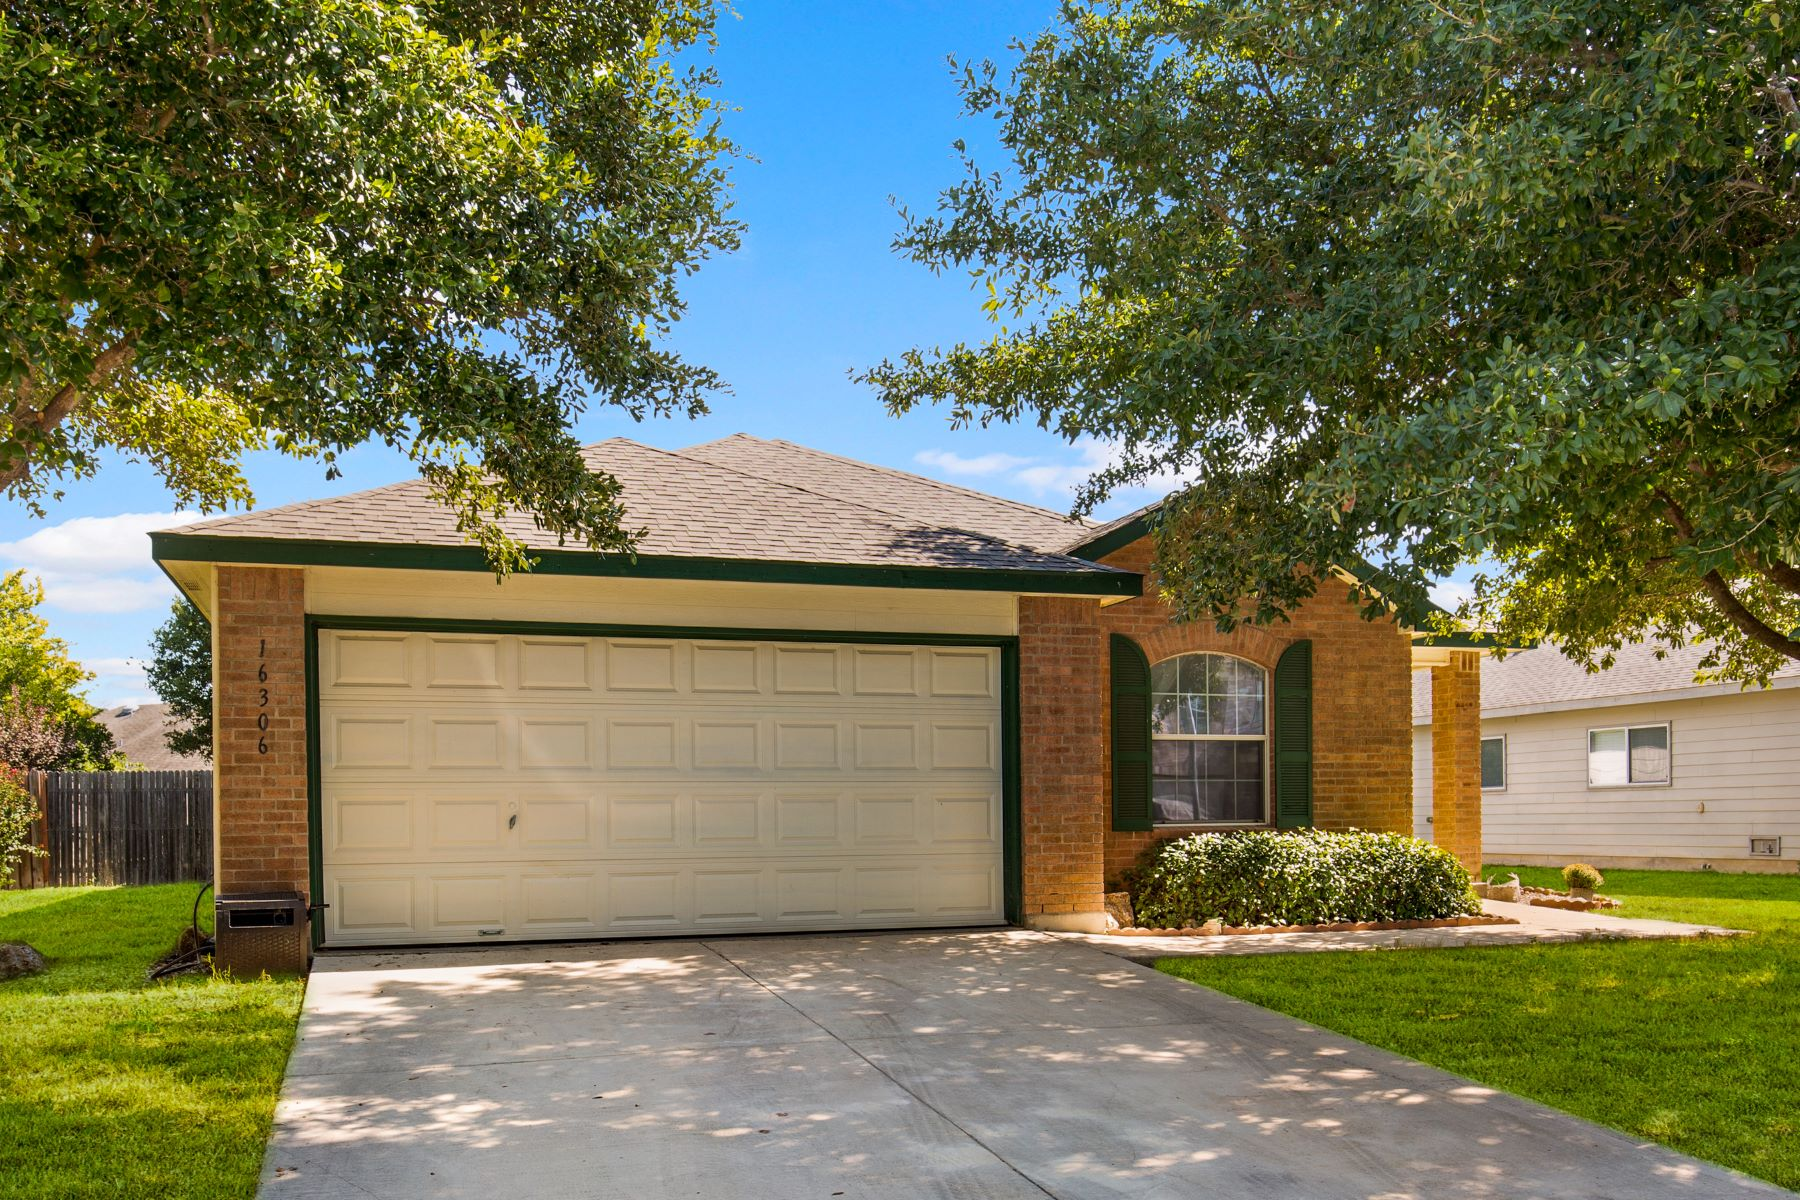 Single Family Homes for Sale at Great Single Story Home in Retama Springs 16306 Amberly Court Selma, Texas 78154 United States